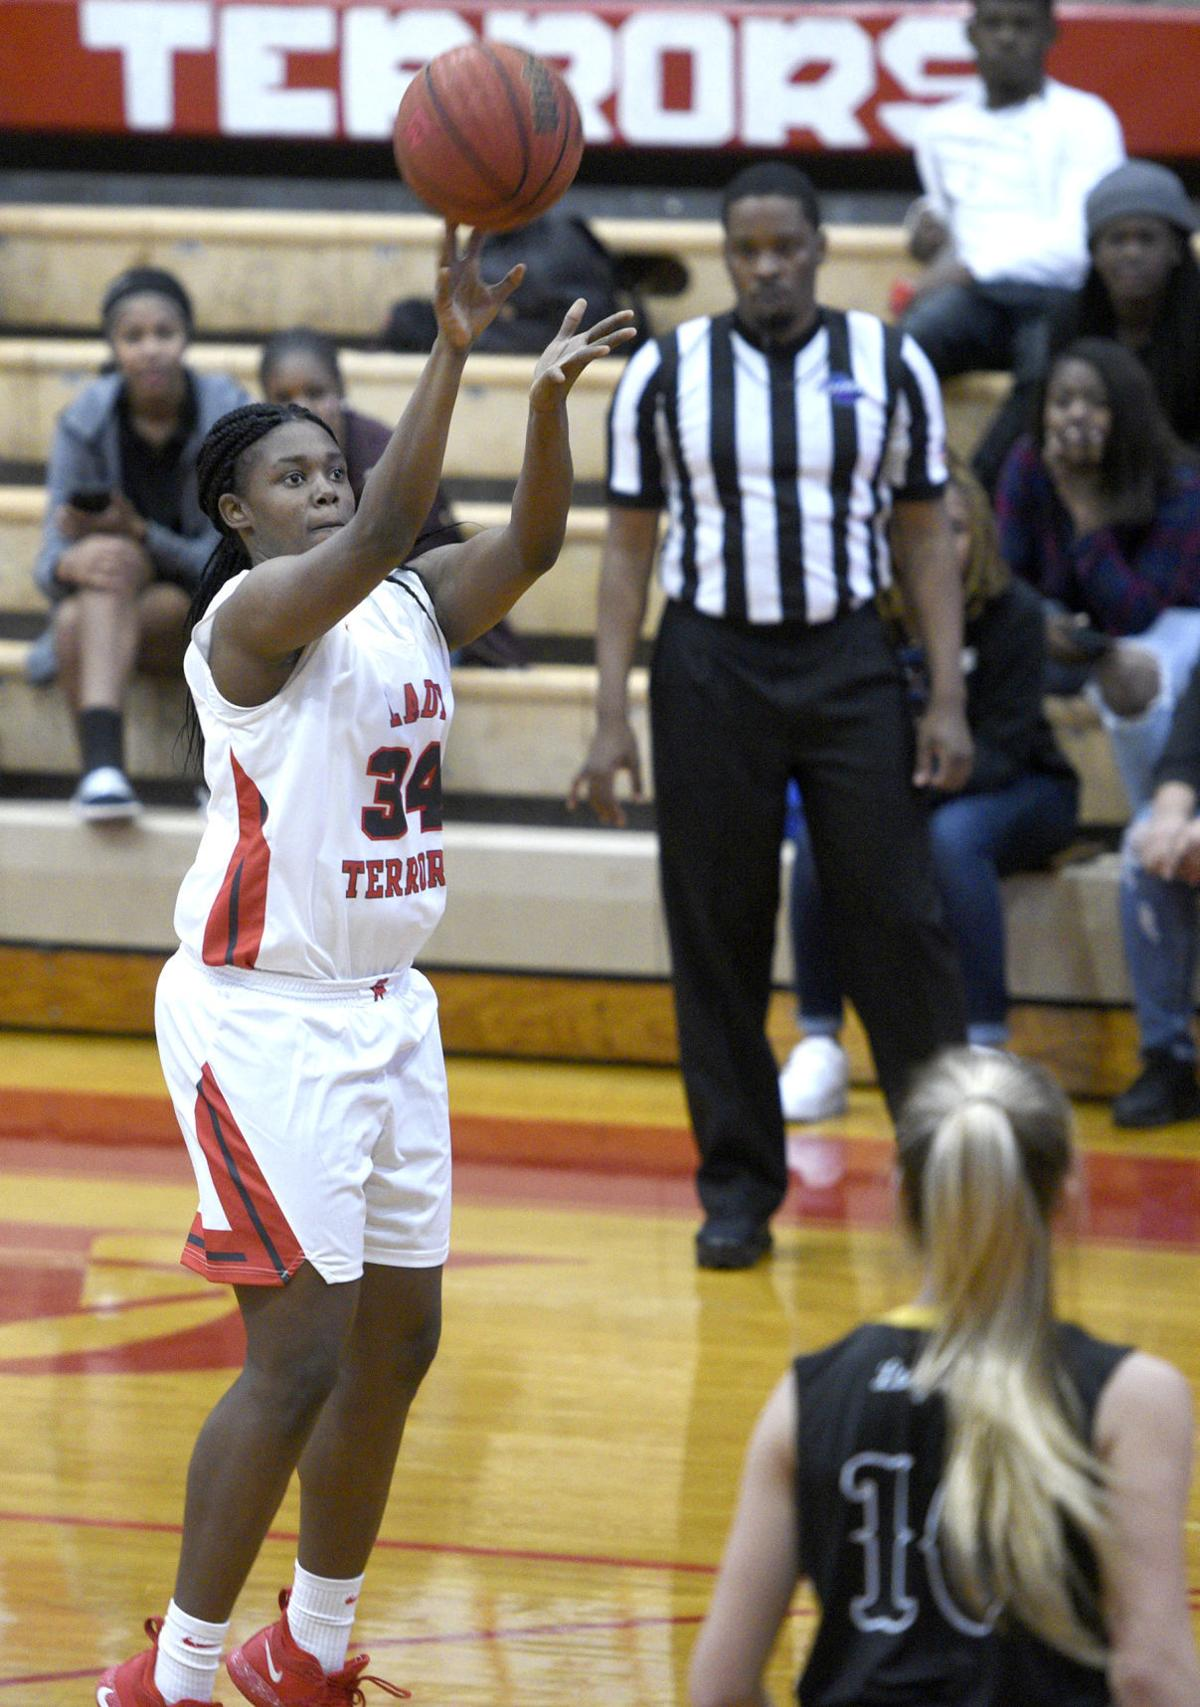 021619_ga evans girls basketball 1